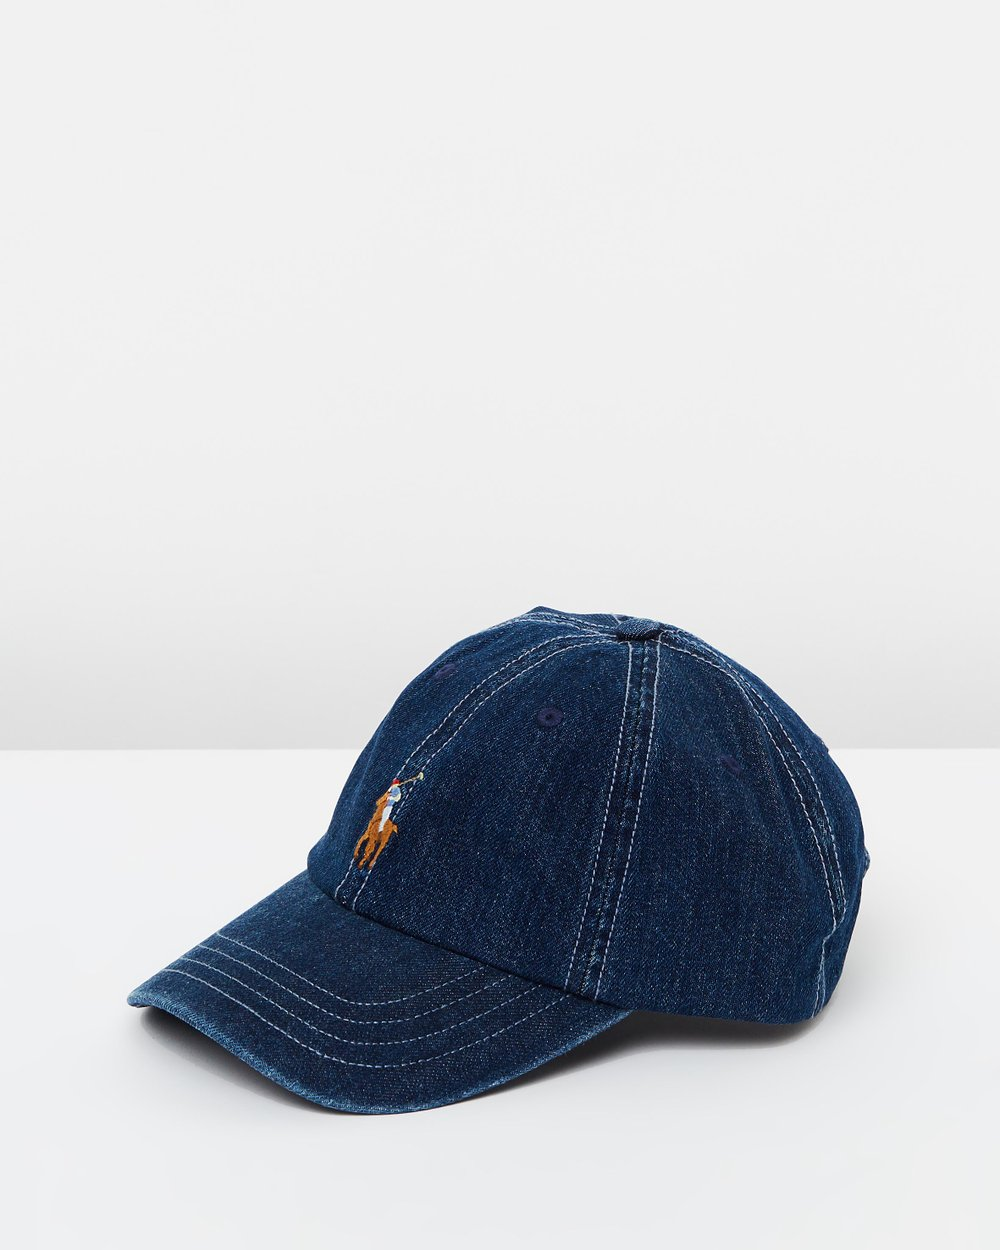 Denim Baseball Cap by Polo Ralph Lauren Online  472a5d834e2